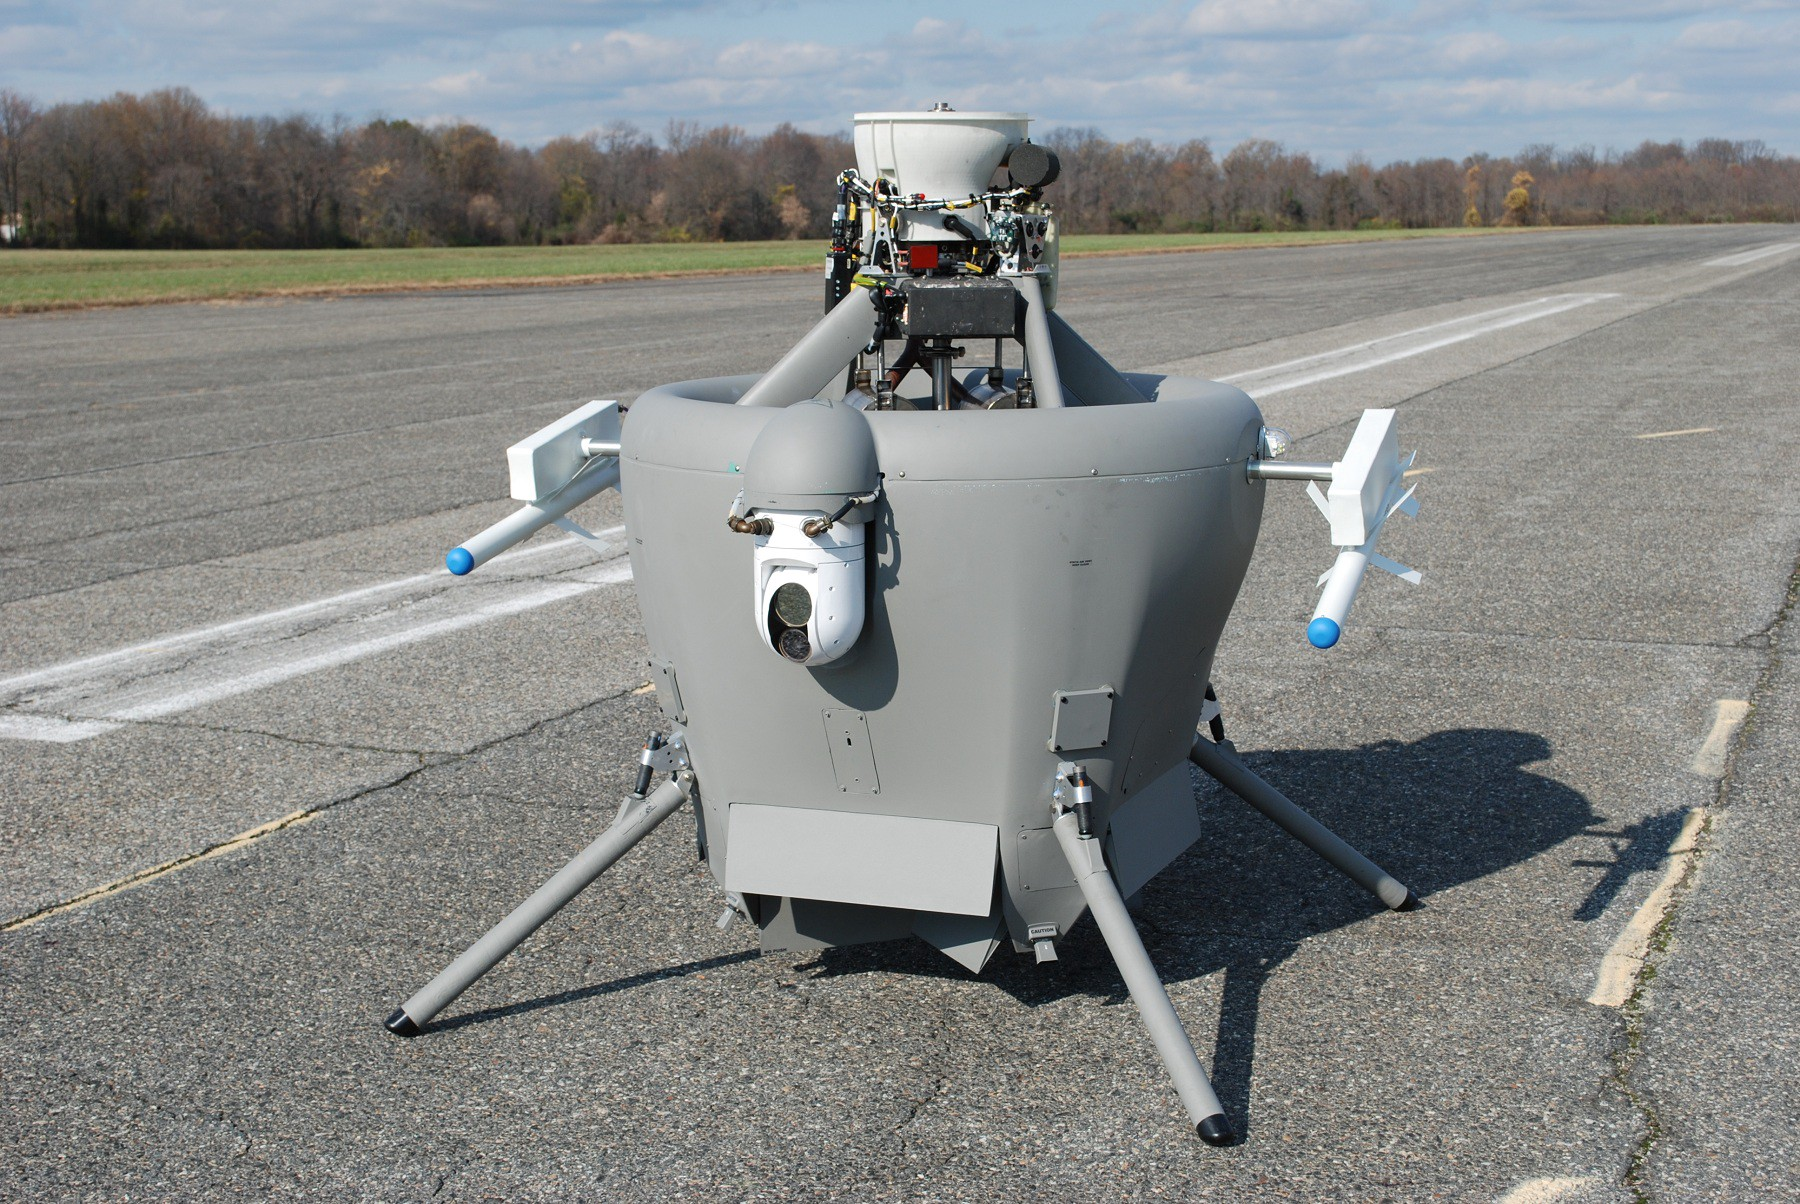 This Ex Military Spy Drone Could Be Headed To Your House